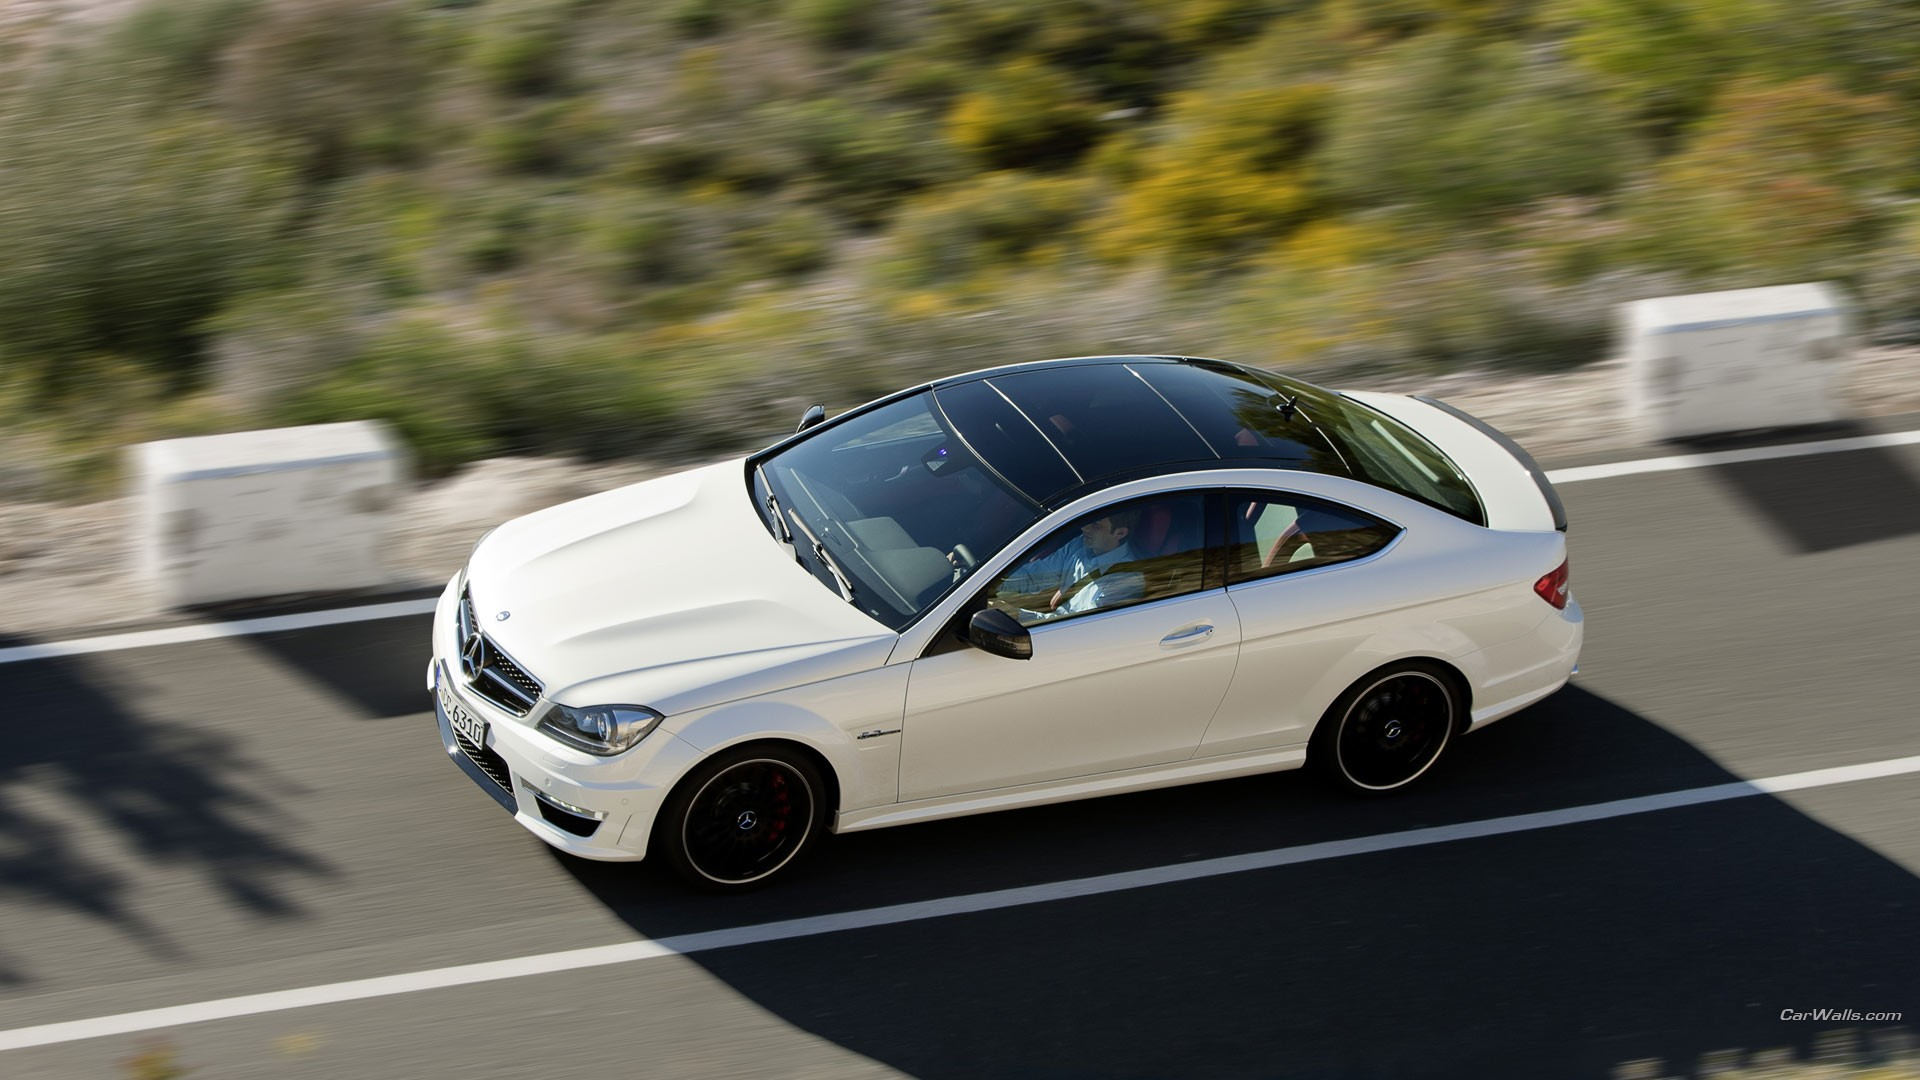 1 2012 Mercedes Benz C63 Amg Coupe HD Wallpapers 1920x1080